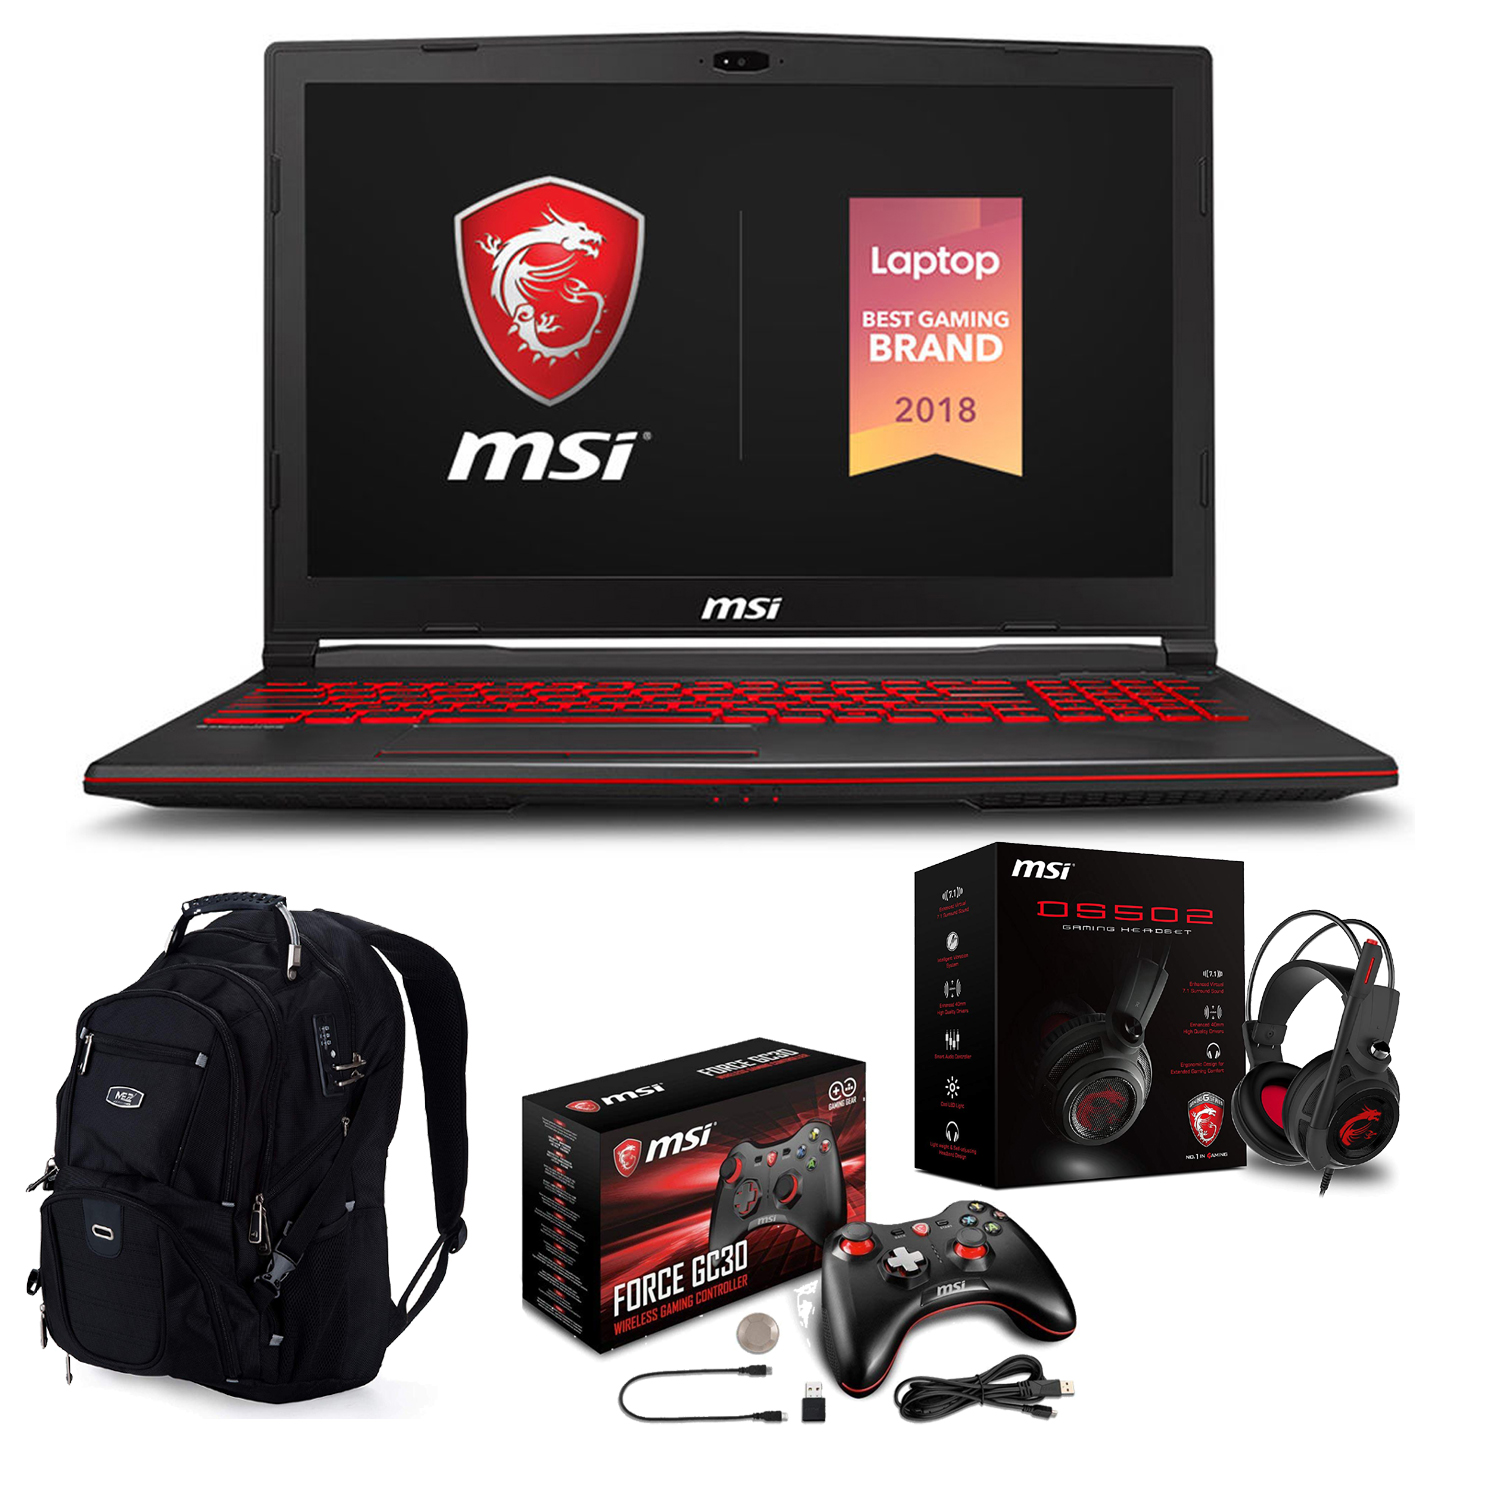 "MSI GL73 8SE-010 17.3"" Gaming Laptop (Intel 8th Gen i7-8750H 6-Core, 16GB RAM, 1TB HDD + 128GB PCIe SSD, 17.3"" Full HD 120Hz 3ms, NVIDIA RTX 2060 6GB, Win 10 Home) With Gaming Bundle"